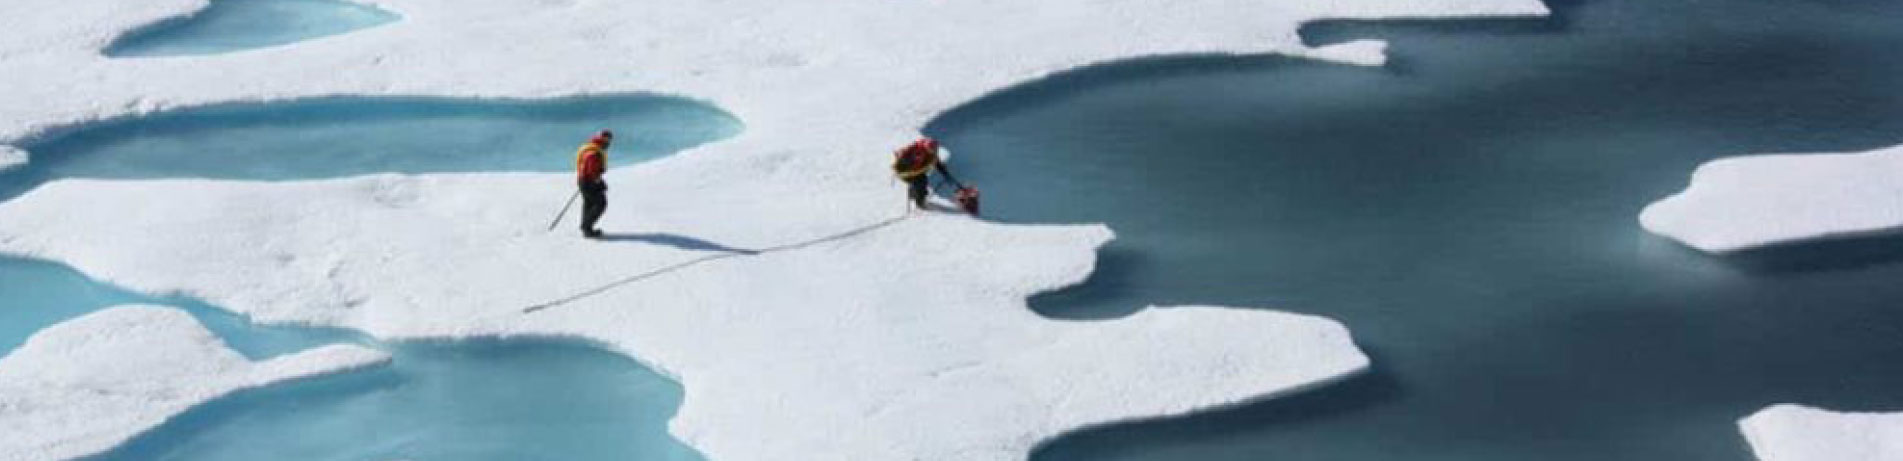 Scientists taking measurements on polar ice